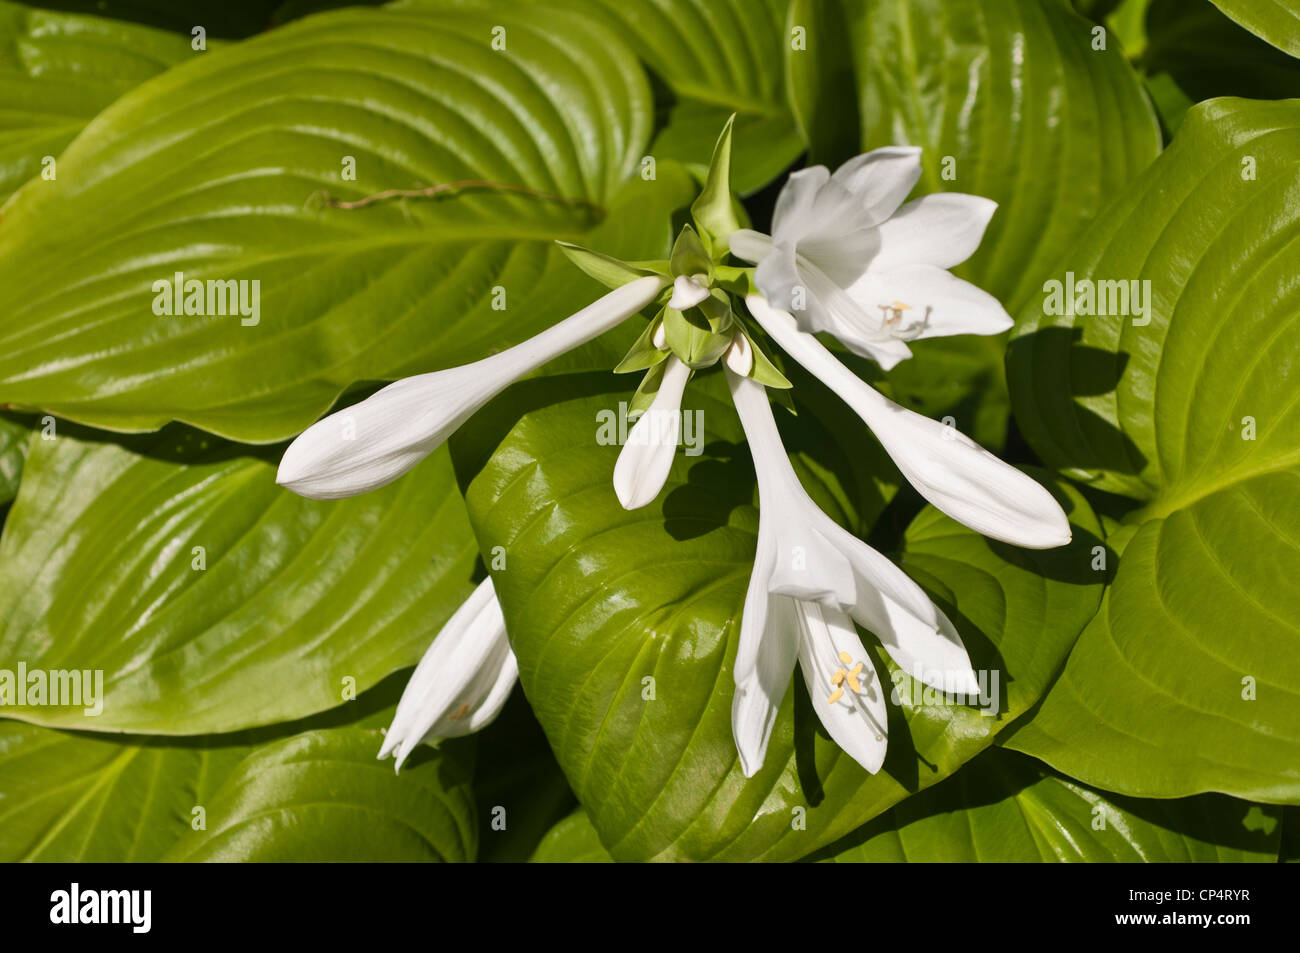 White flowers of fragrant hosta august lily hosta plantaginea white flowers of fragrant hosta august lily hosta plantaginea growing in the garden bloom blossom petals cultivar mightylinksfo